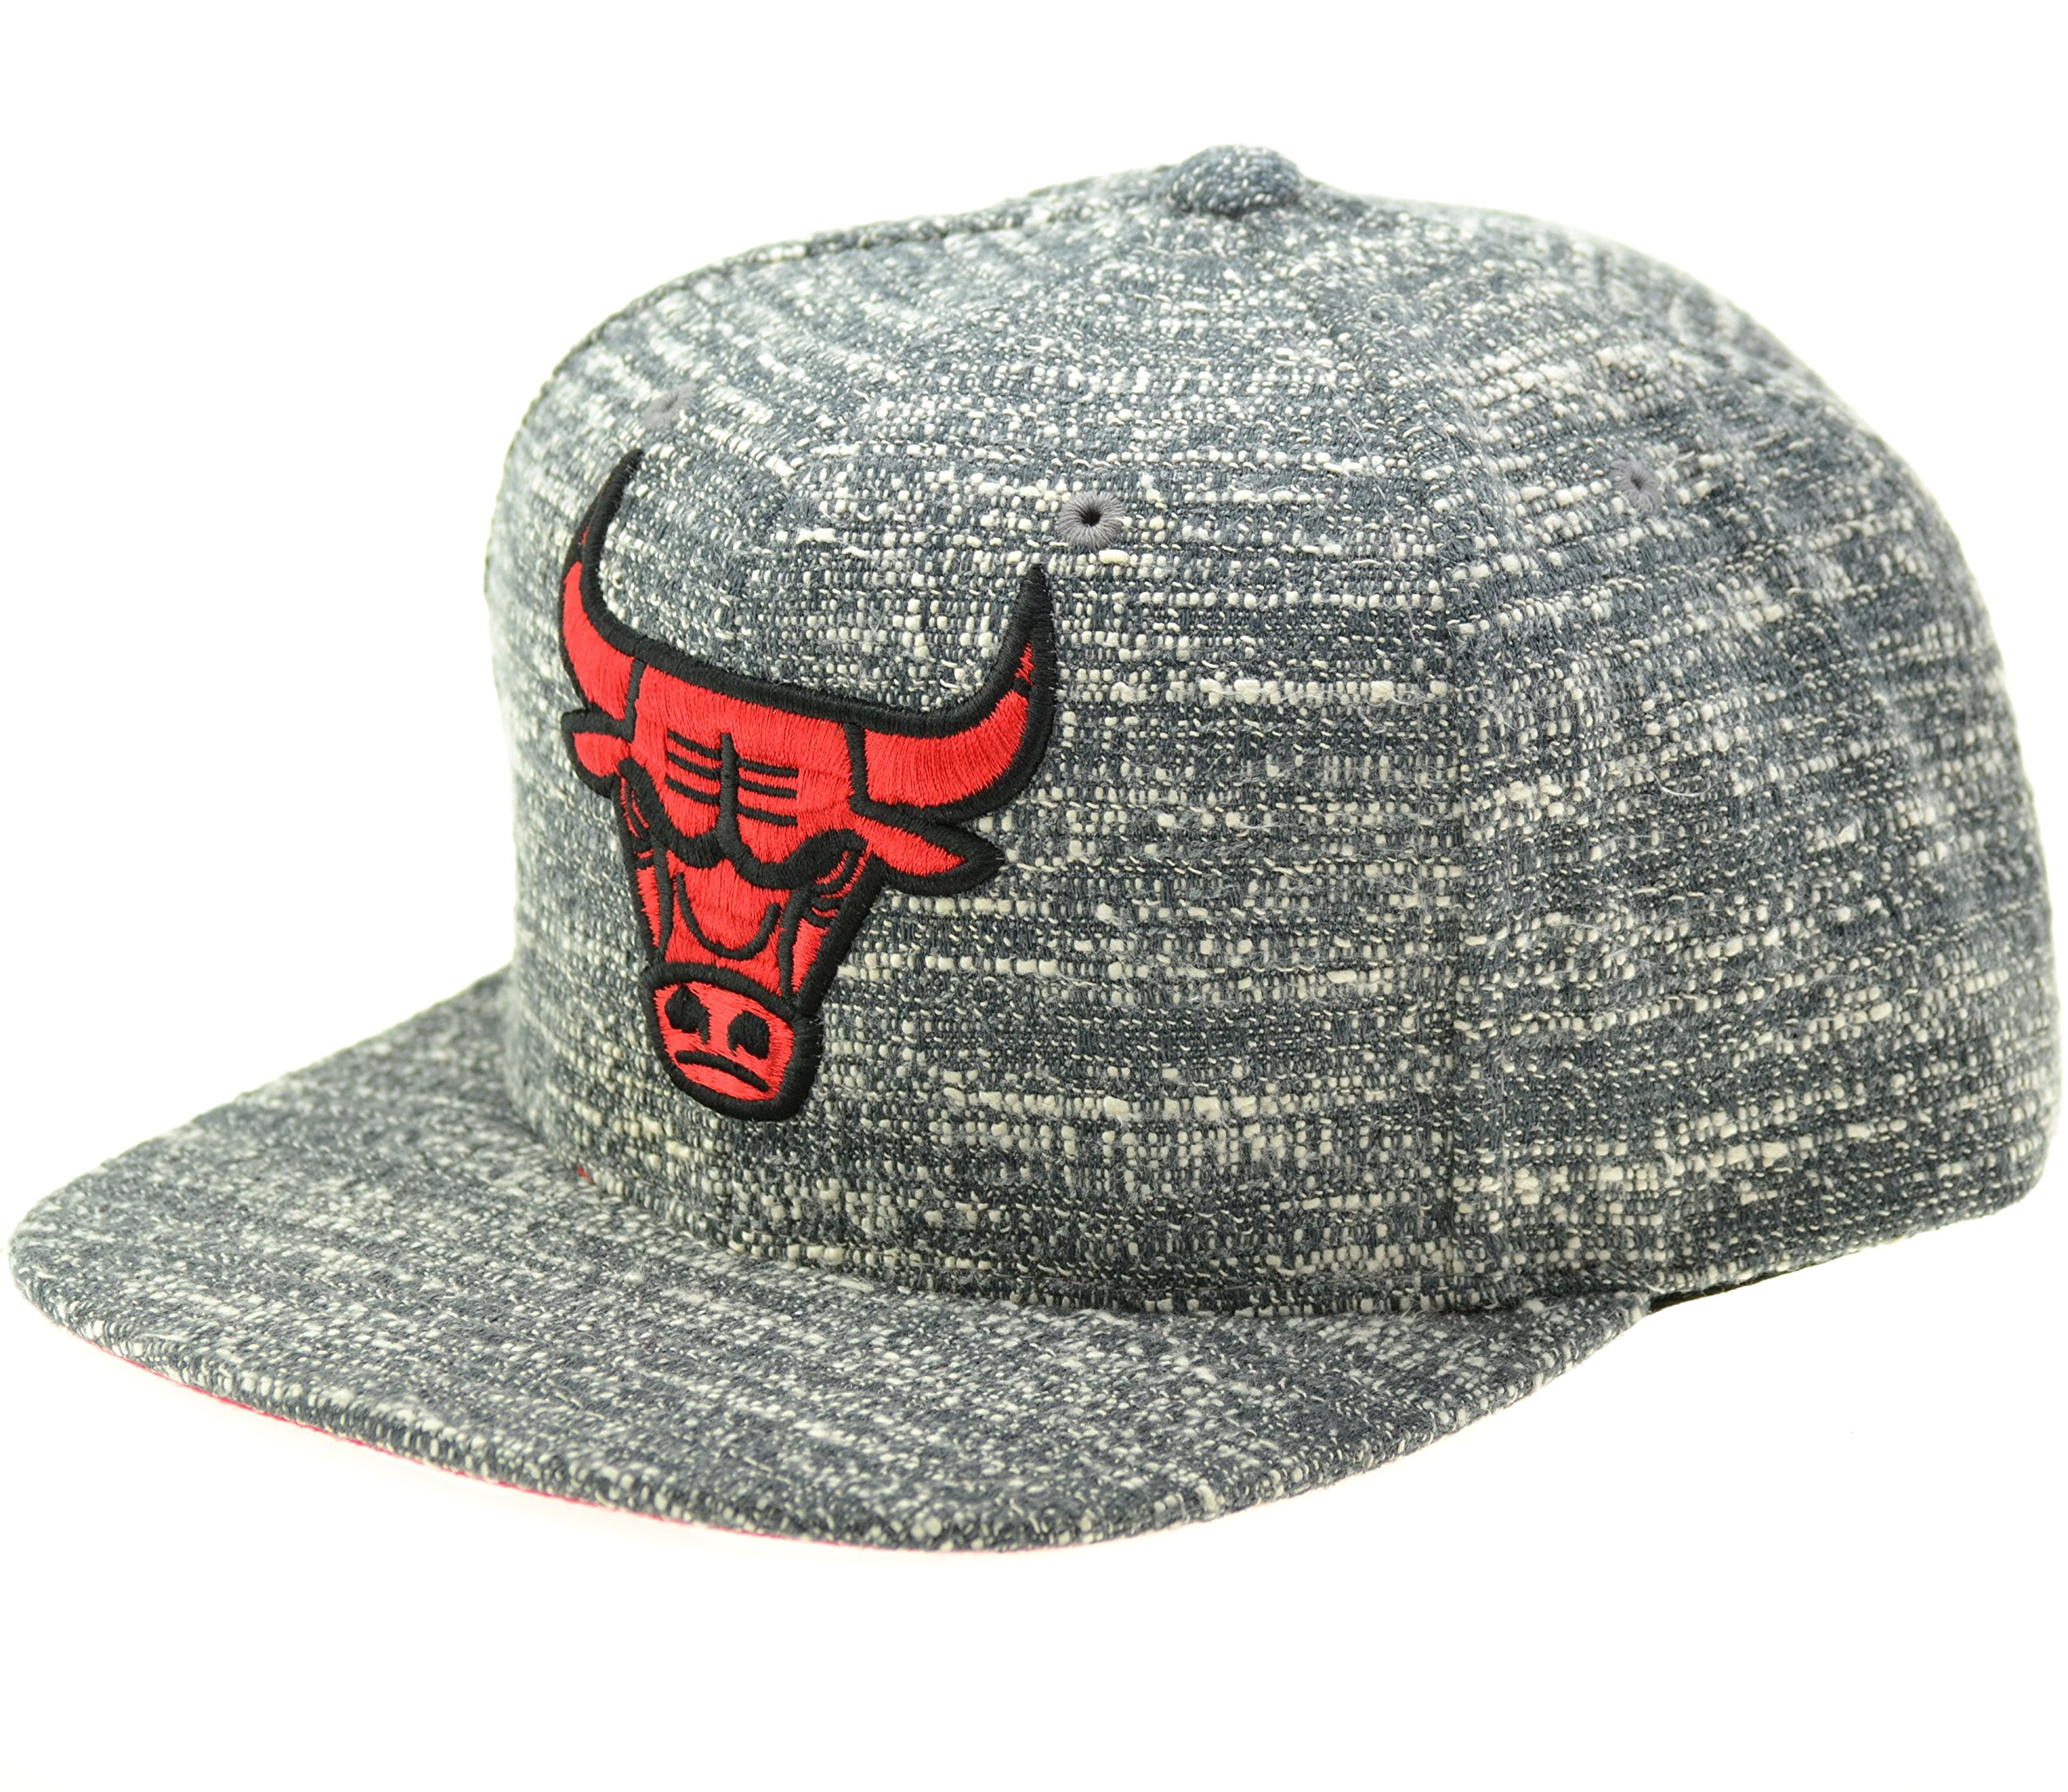 finest selection 73fb8 55463 uk boston bruins coach beanie hat black discount save up toonline  retailerbrand 10c57 450b2  france chicago bulls mitchell ness nba snapback  hat gray solid ...